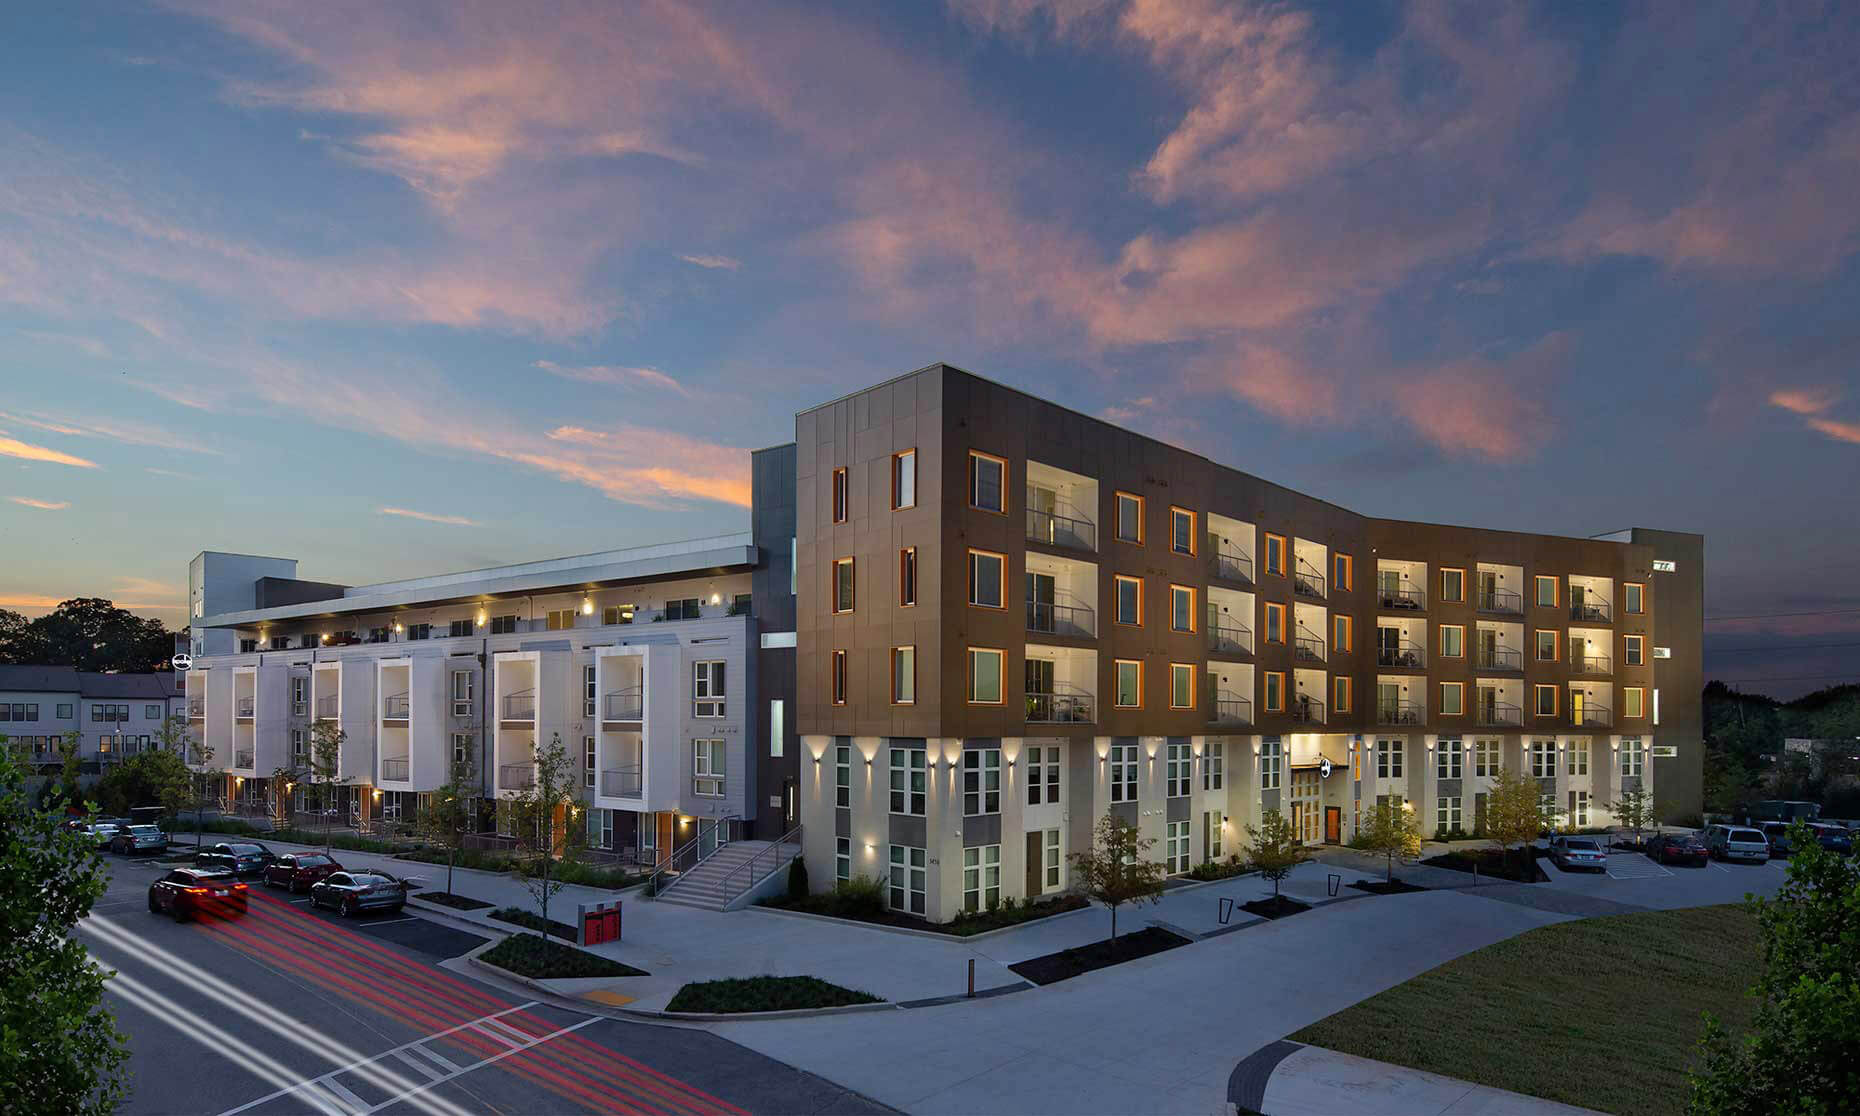 An elevated view at twilight of the Spoke at Edgewood-Candler Apartment Community - Atlanta Architectural Photographers